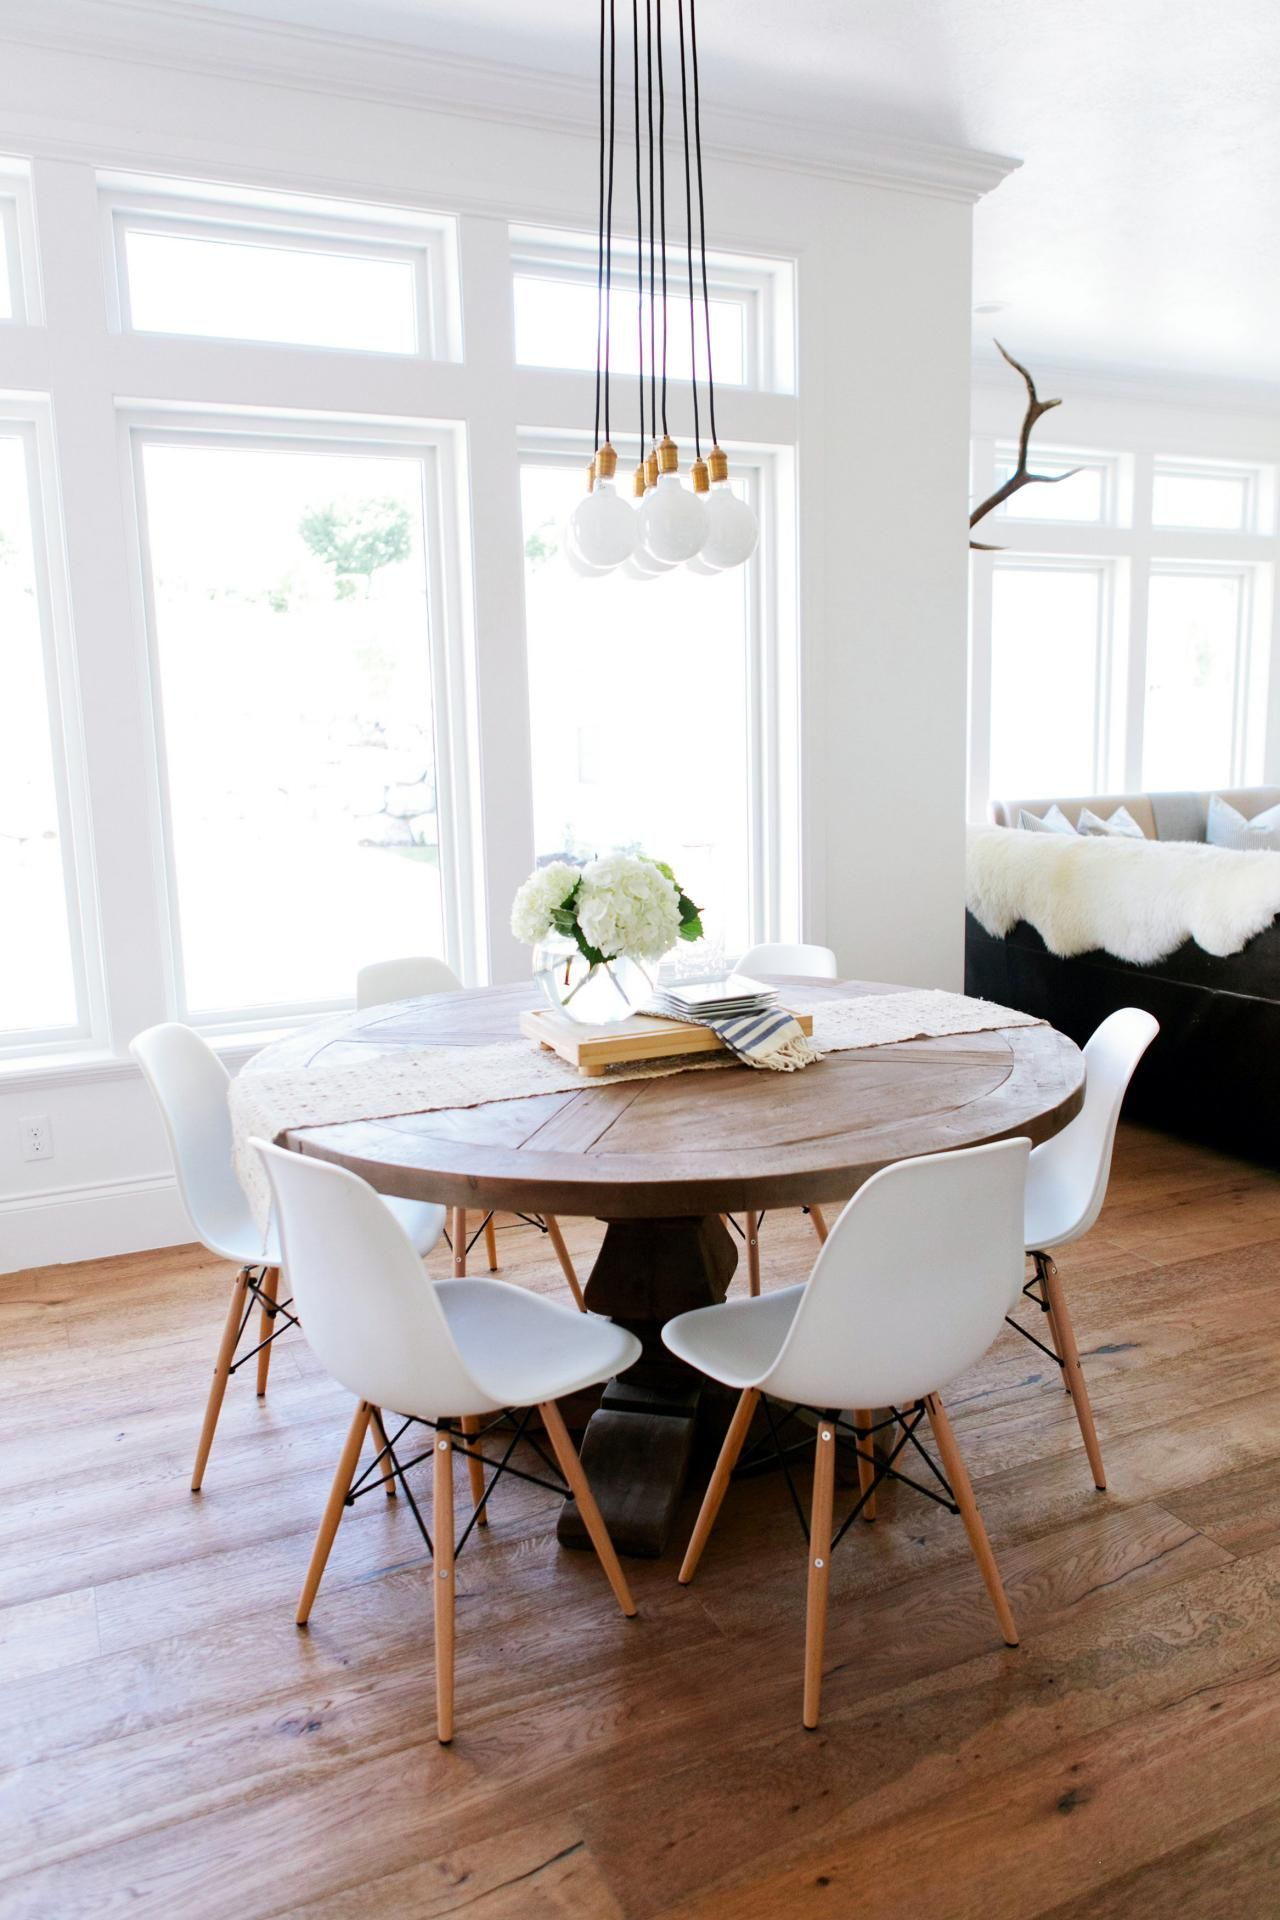 round table and chairs Kitchen + Dining | Fresh Faces of Design | HGTV | Kitchen y in  round table and chairs